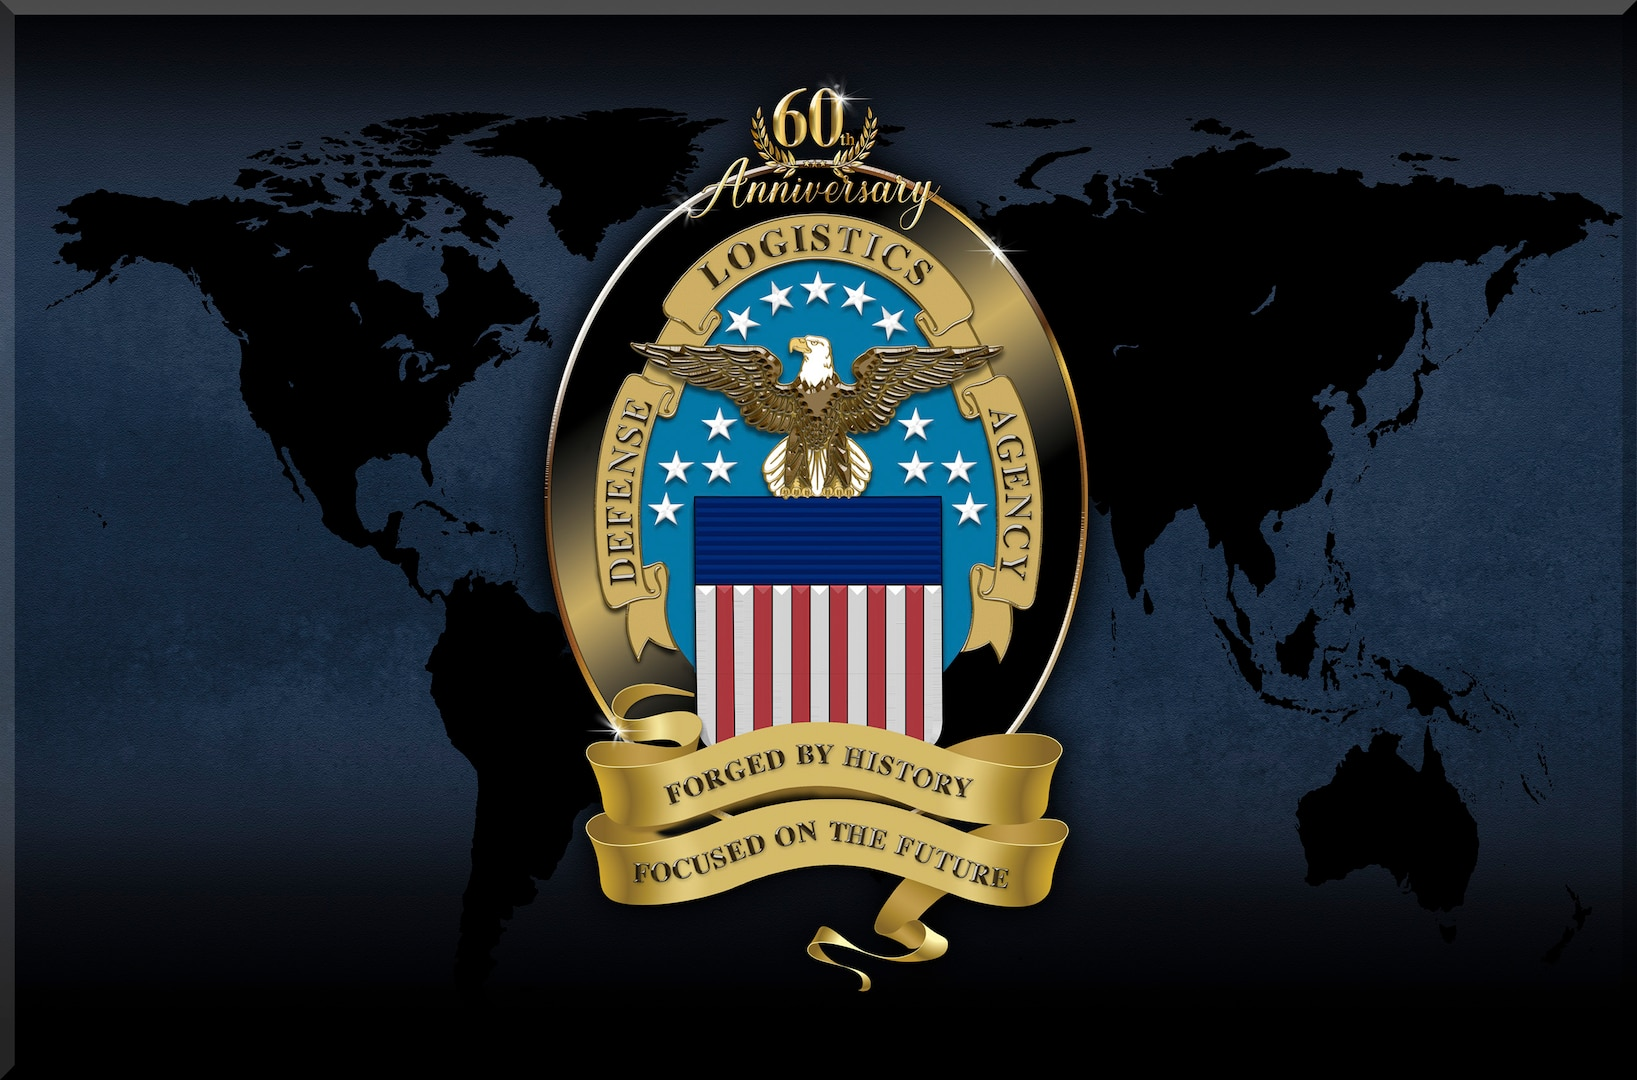 DLA logo showing an eagle, stars and stripes with the numbers 60.